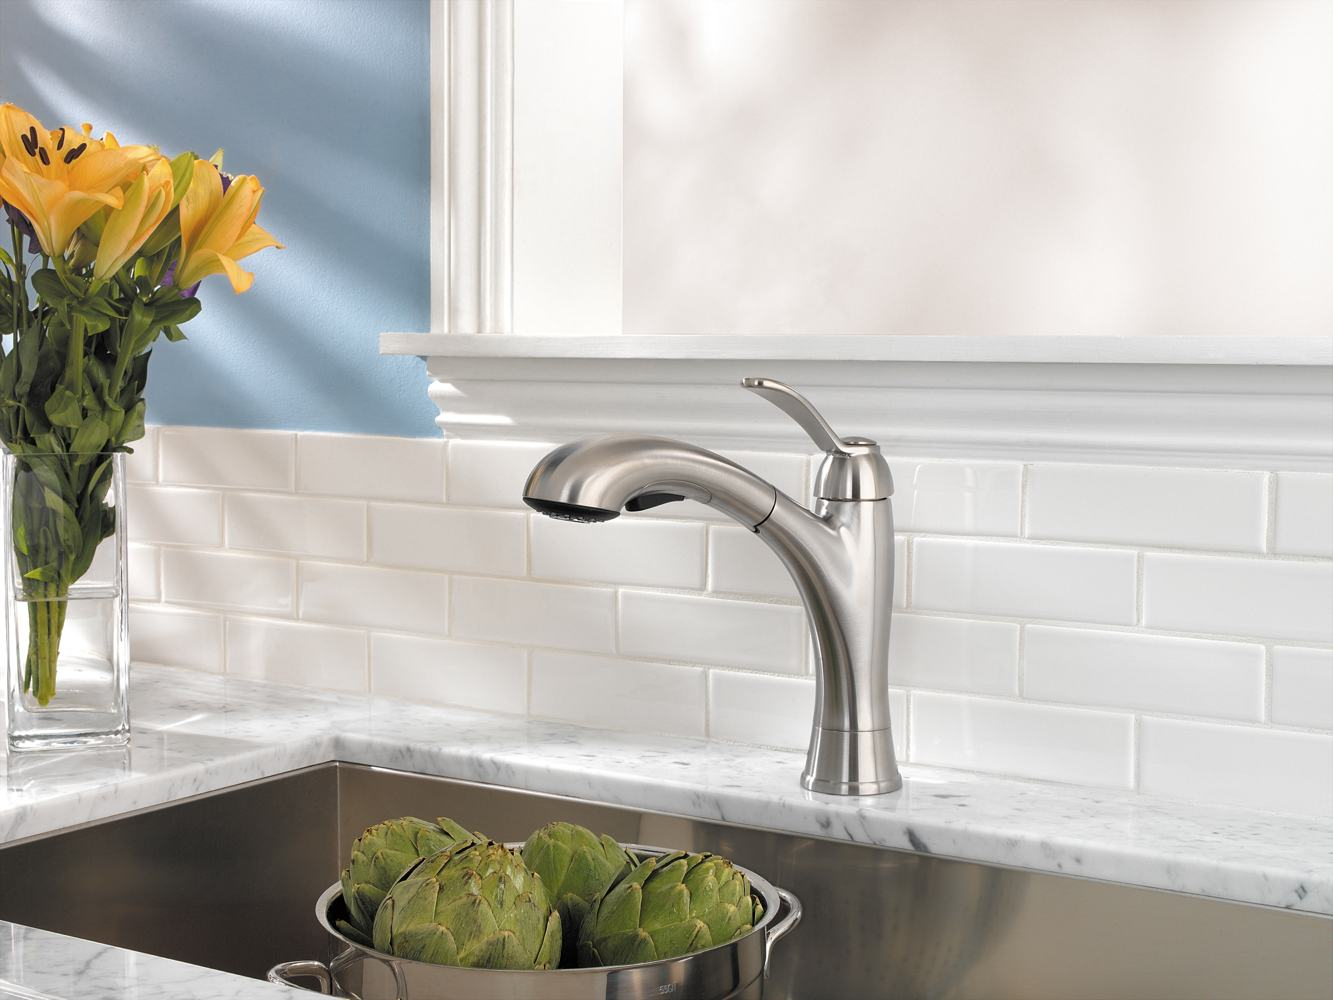 Functional pull-out faucet with elegant, modern design ( view larger